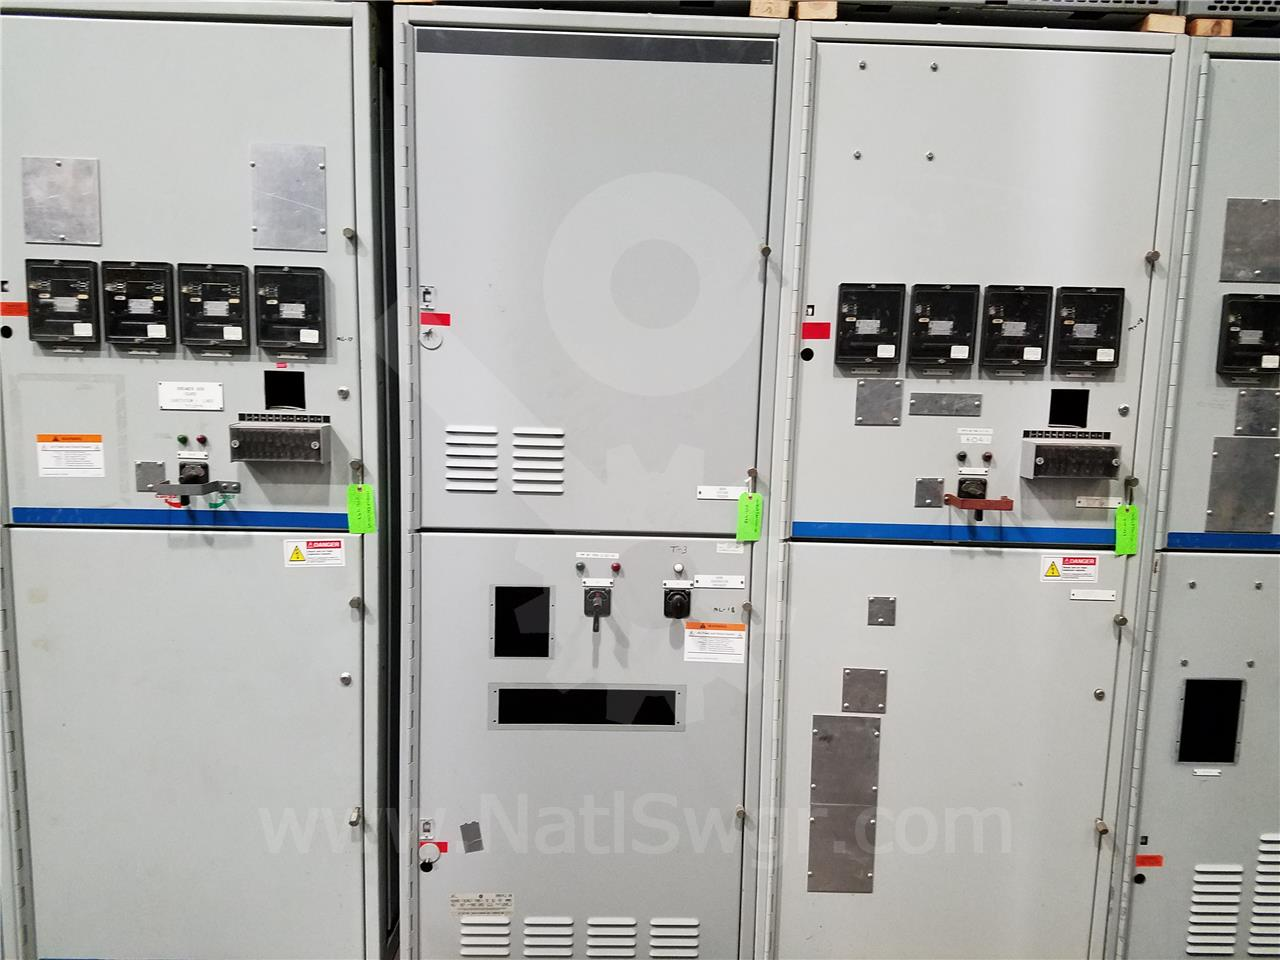 15KV GE / General Electric VB/VB1 INDOOR SWITCHGEAR 2000A BREAKER COMPARTMENT, BLANK, 125VDC CONTROL